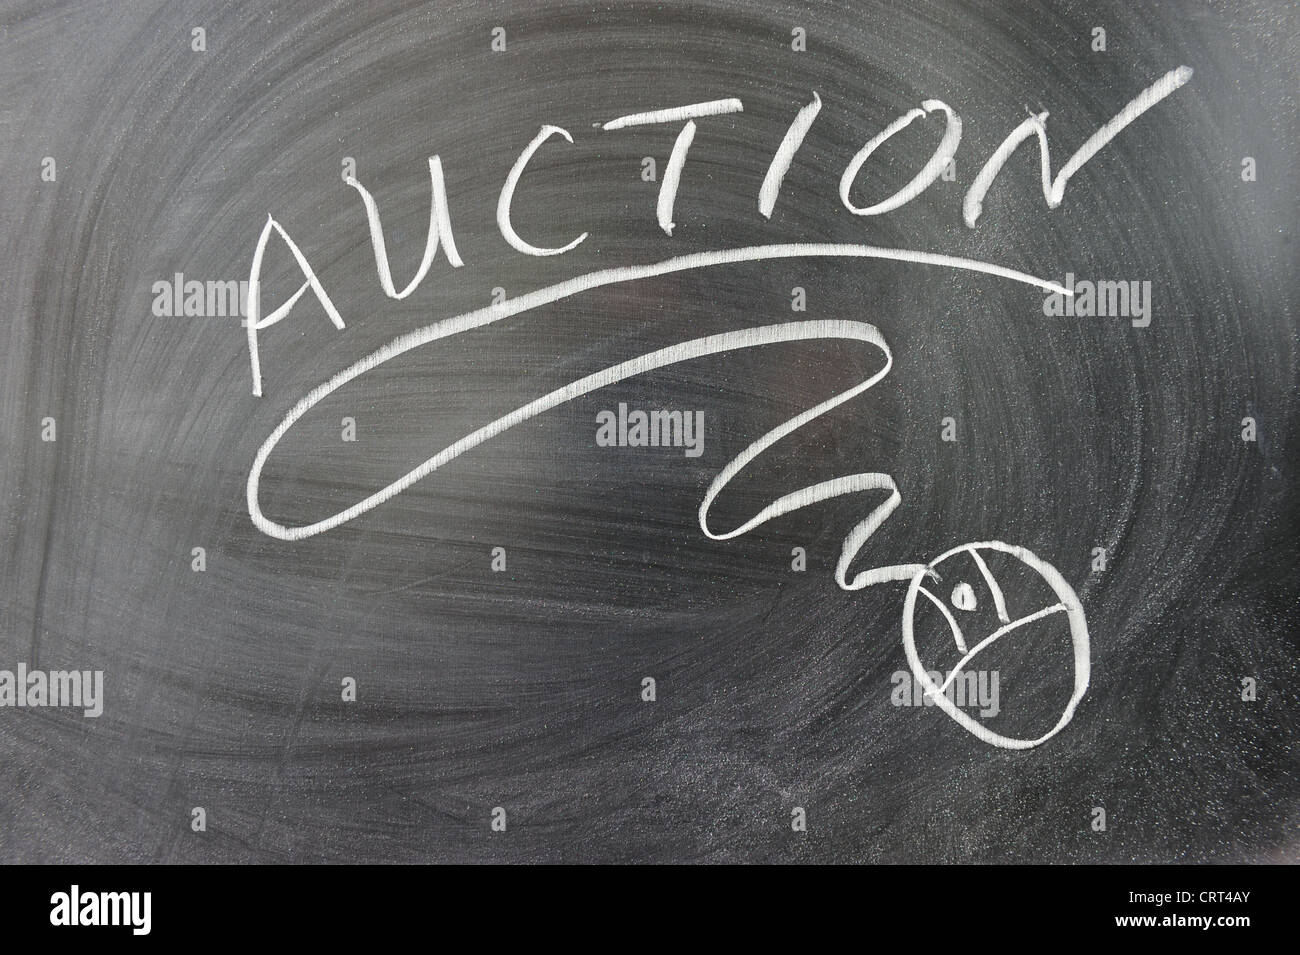 Auction word and mouse symbol on the chalkboard - Stock Image